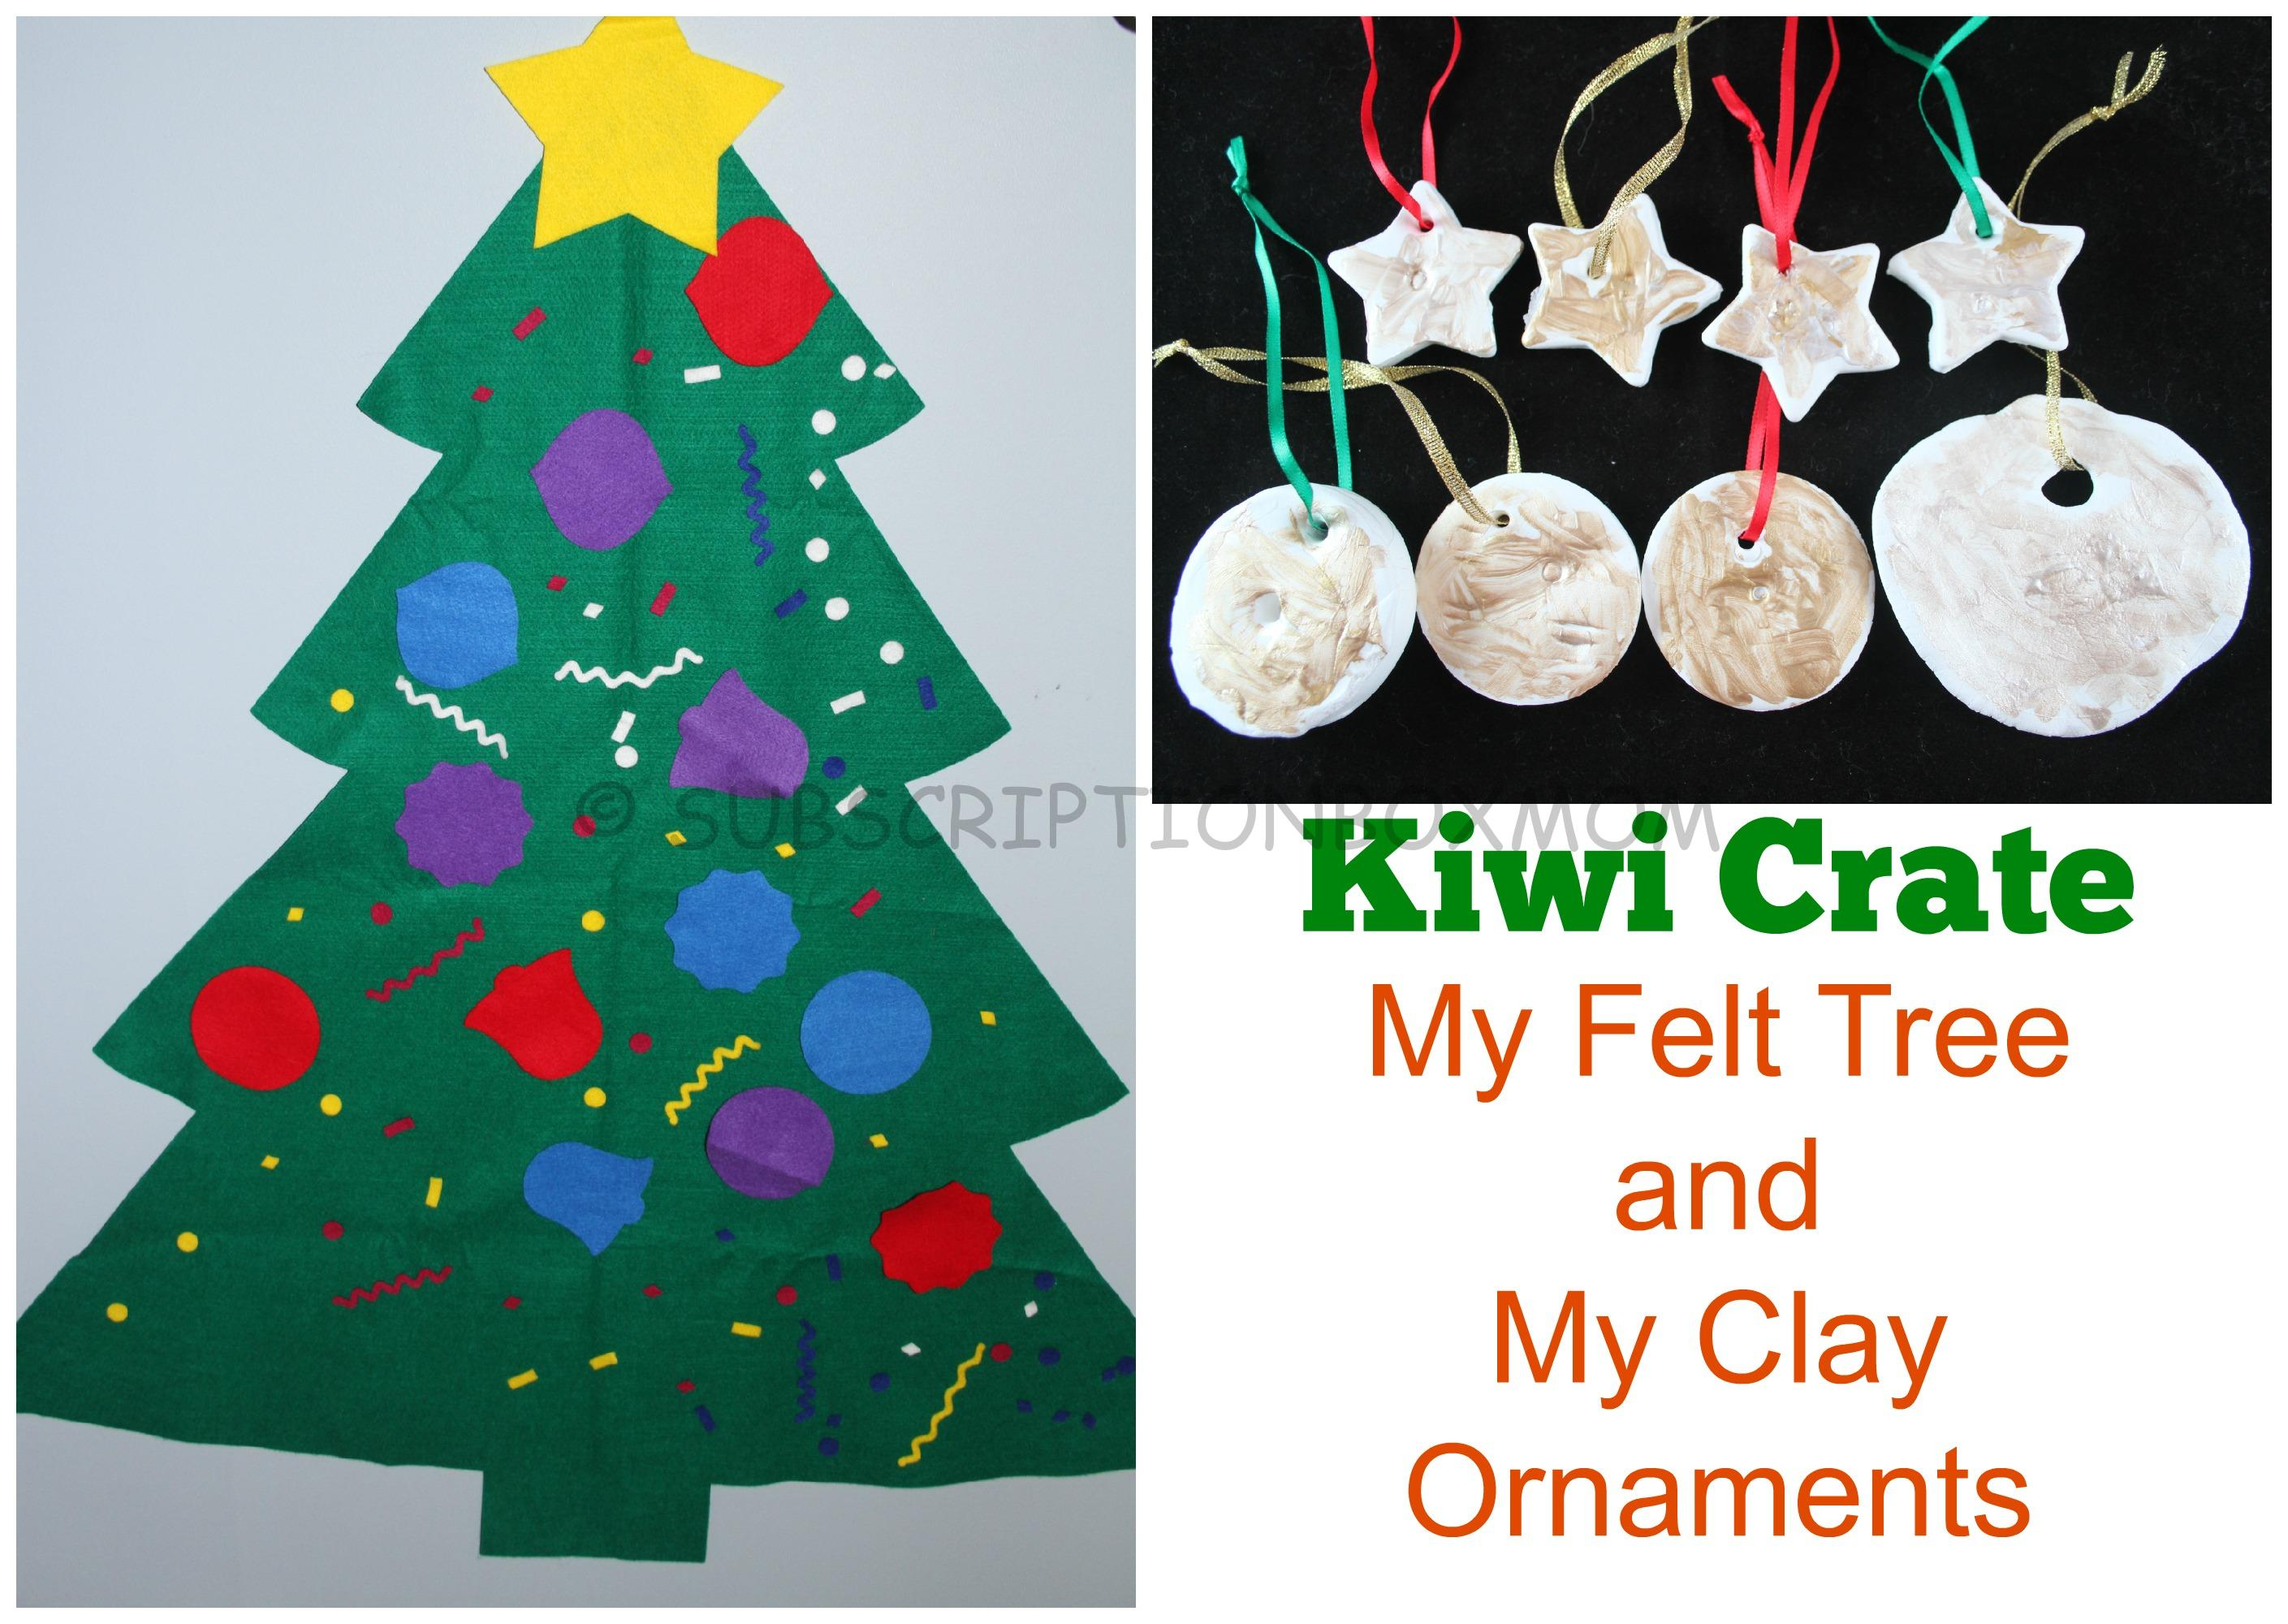 Kiwi Crate My Felt Tree + My Clay Ornaments